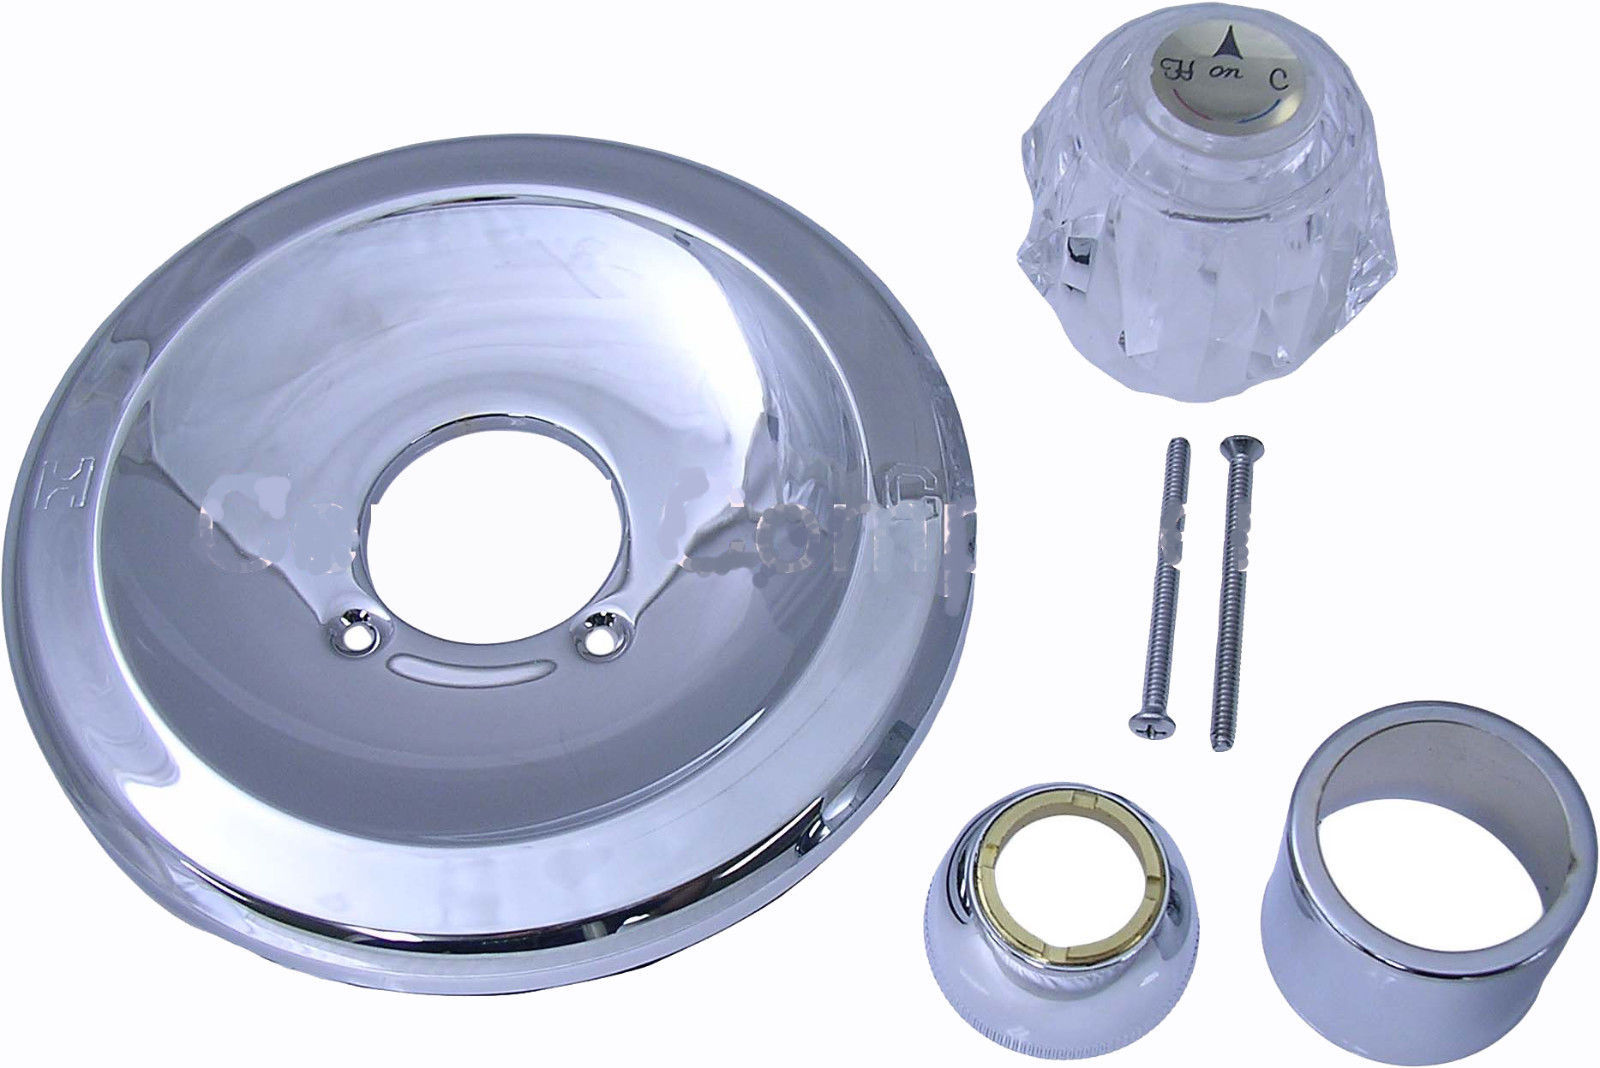 Delta Replacement Trim Kit Brushed Nickel Plated - $59.88